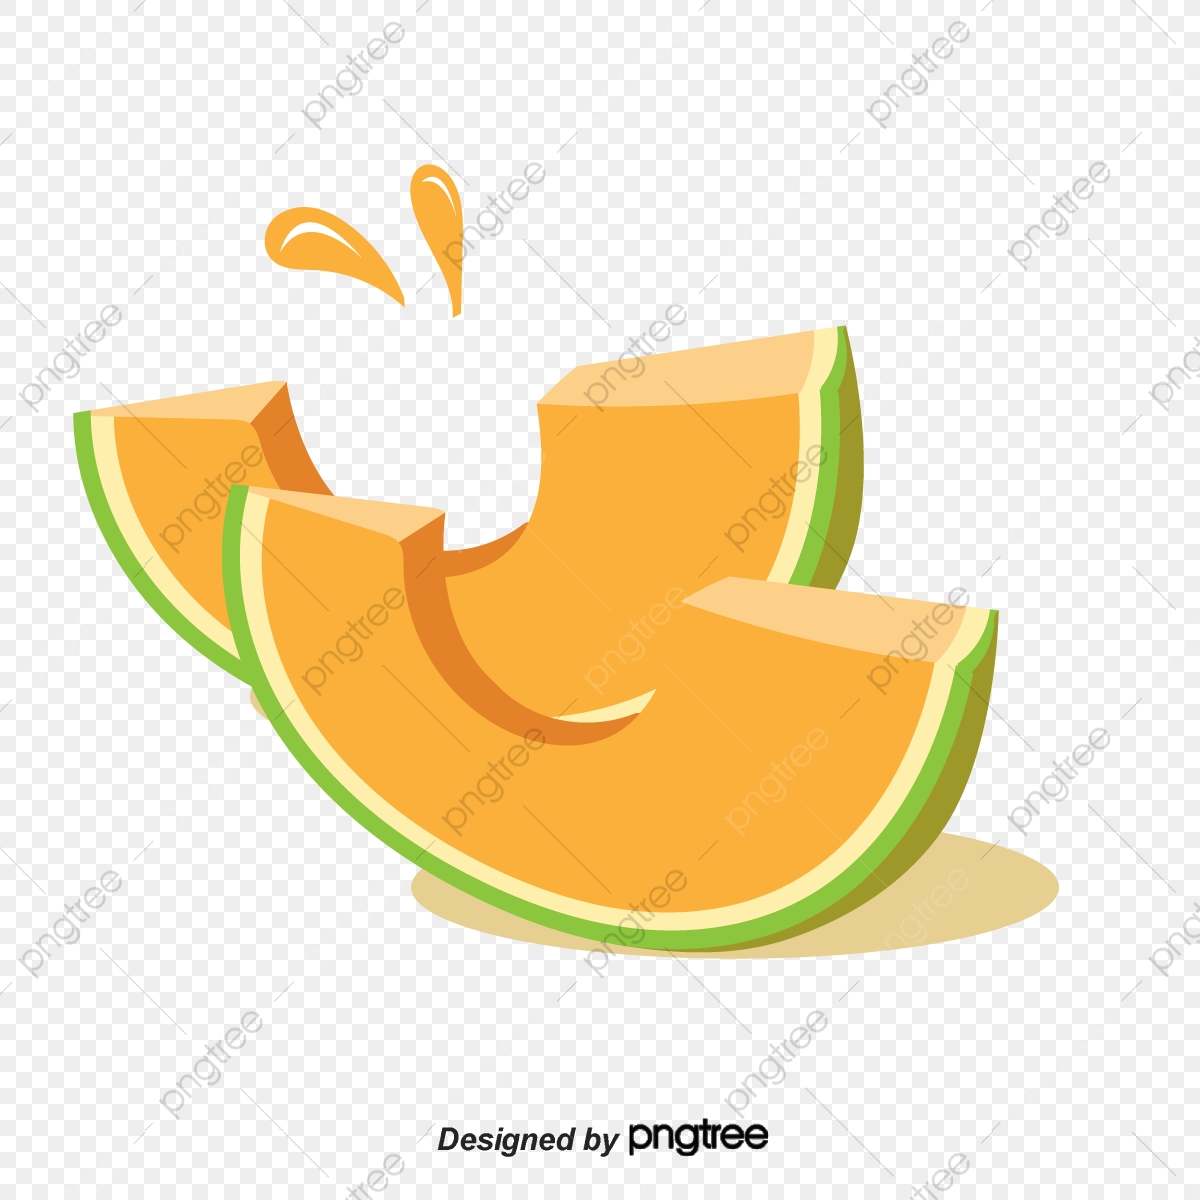 Vector Cartoon Cantaloupe Fruit Clipart Cartoon Vector Cantaloupe Png And Vector With Transparent Background For Free Download What's more, other formats of cartoon clipart, cantaloupe, food vectors or background images are also available. https pngtree com freepng vector cartoon cantaloupe 891521 html